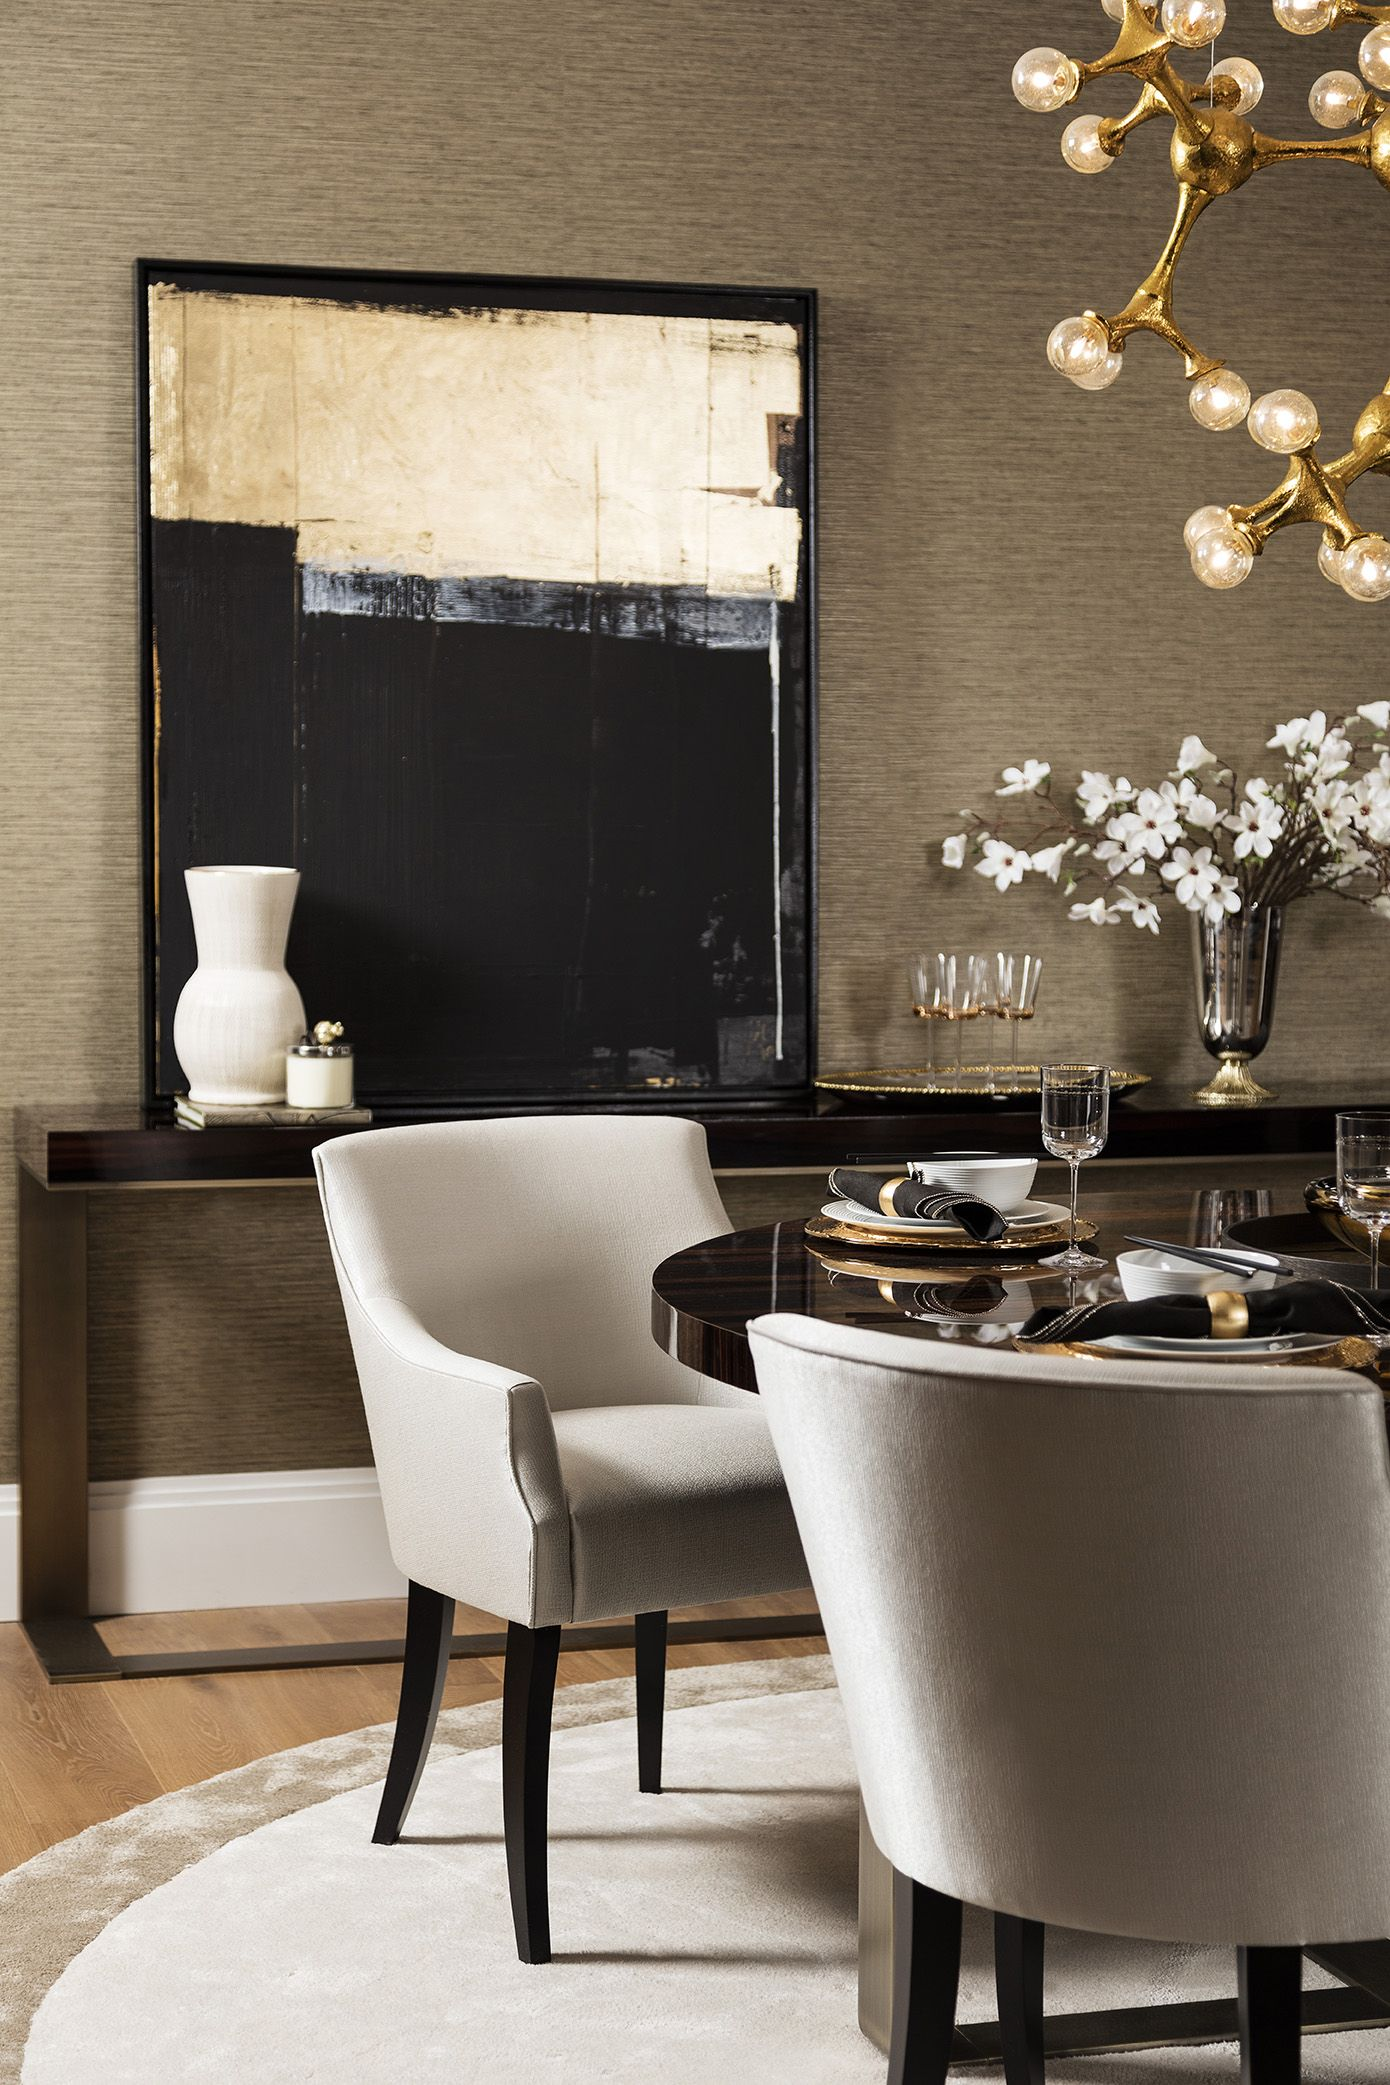 Elliot Carver Luxury Dining Room Chair An Upholstered Dining Chair Featured Here In A Textured Sateen Silver Gr Luxury Dining Room Dining Chairs Luxury Dining Elegant living room chairs